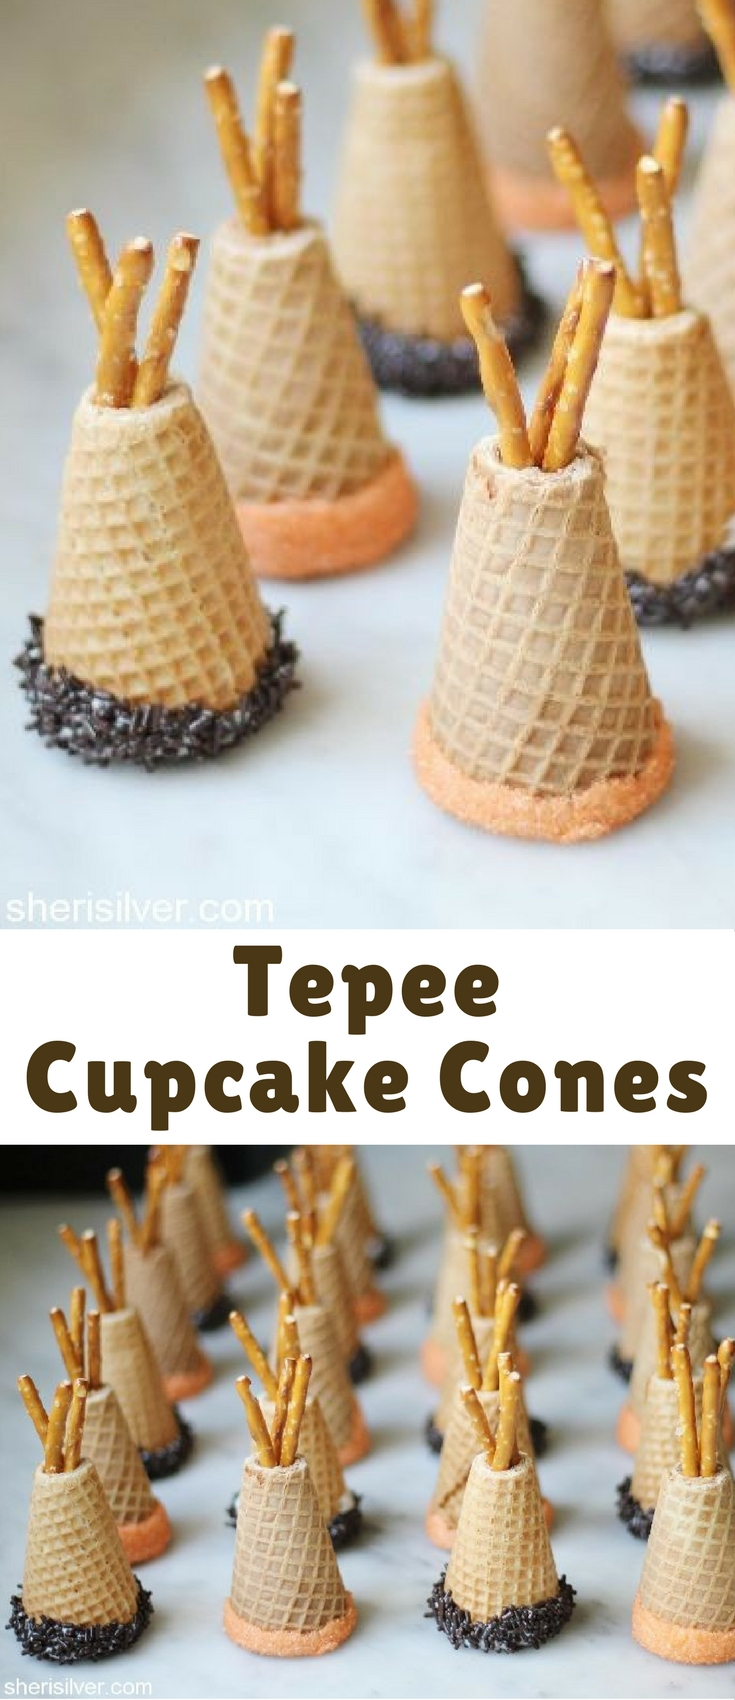 If you're looking for a fast-easy-ADORABLE-edible-centerpieceworthy-kidfriendly-Thanksgiving craft: